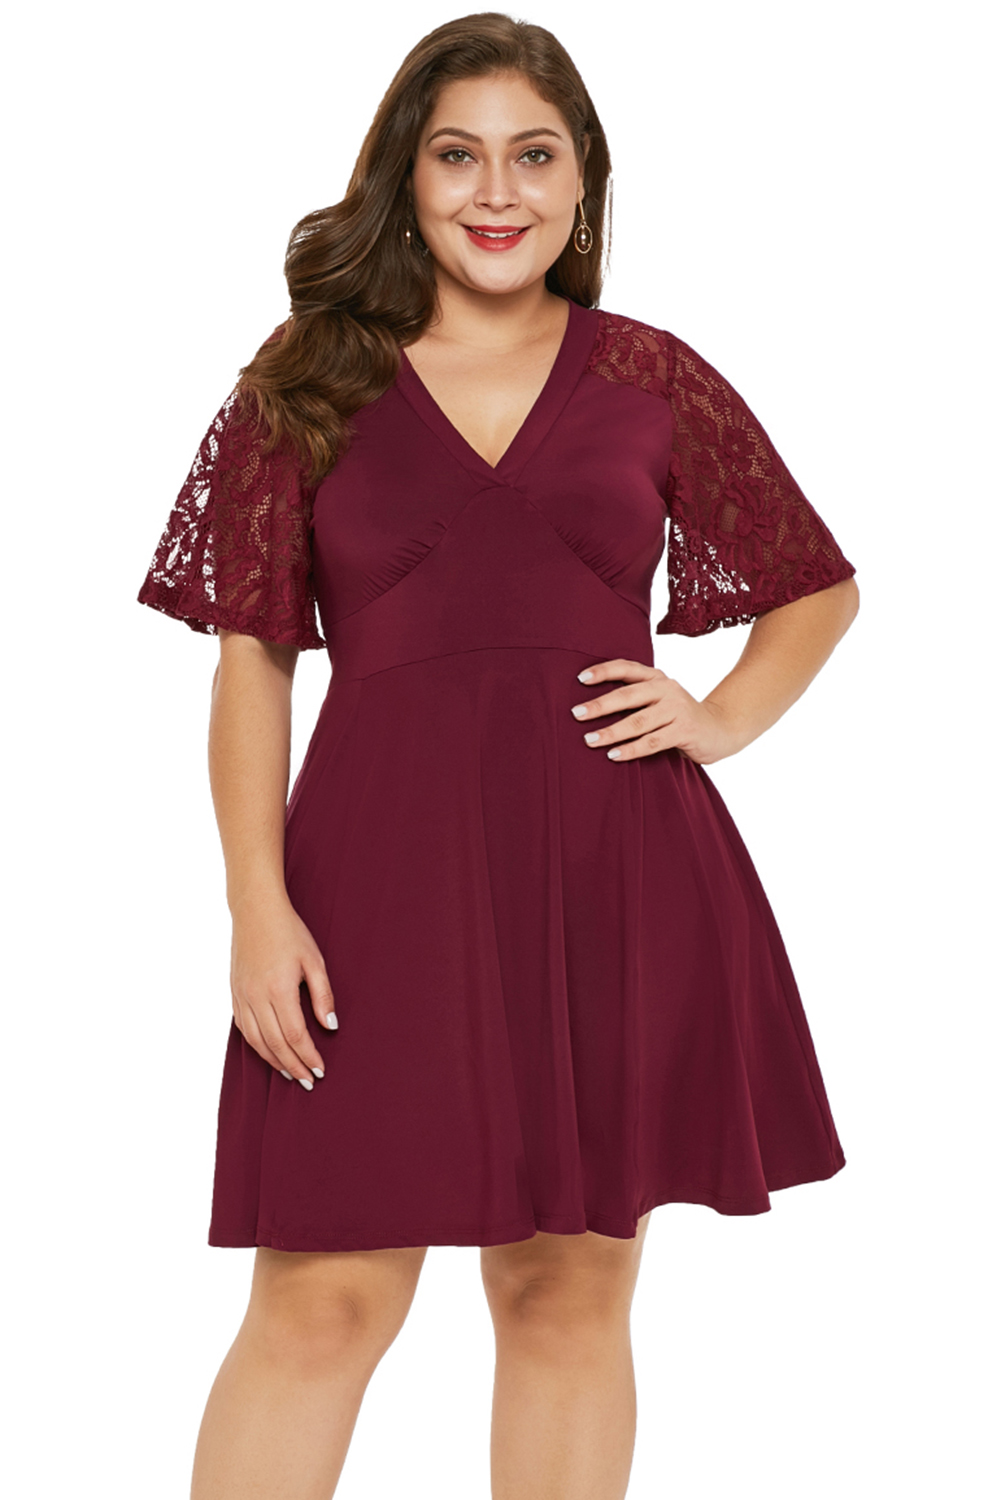 US$ 6.9 - Red Short Sleeve Lace Patchwork Plus Size Skater Dress ...